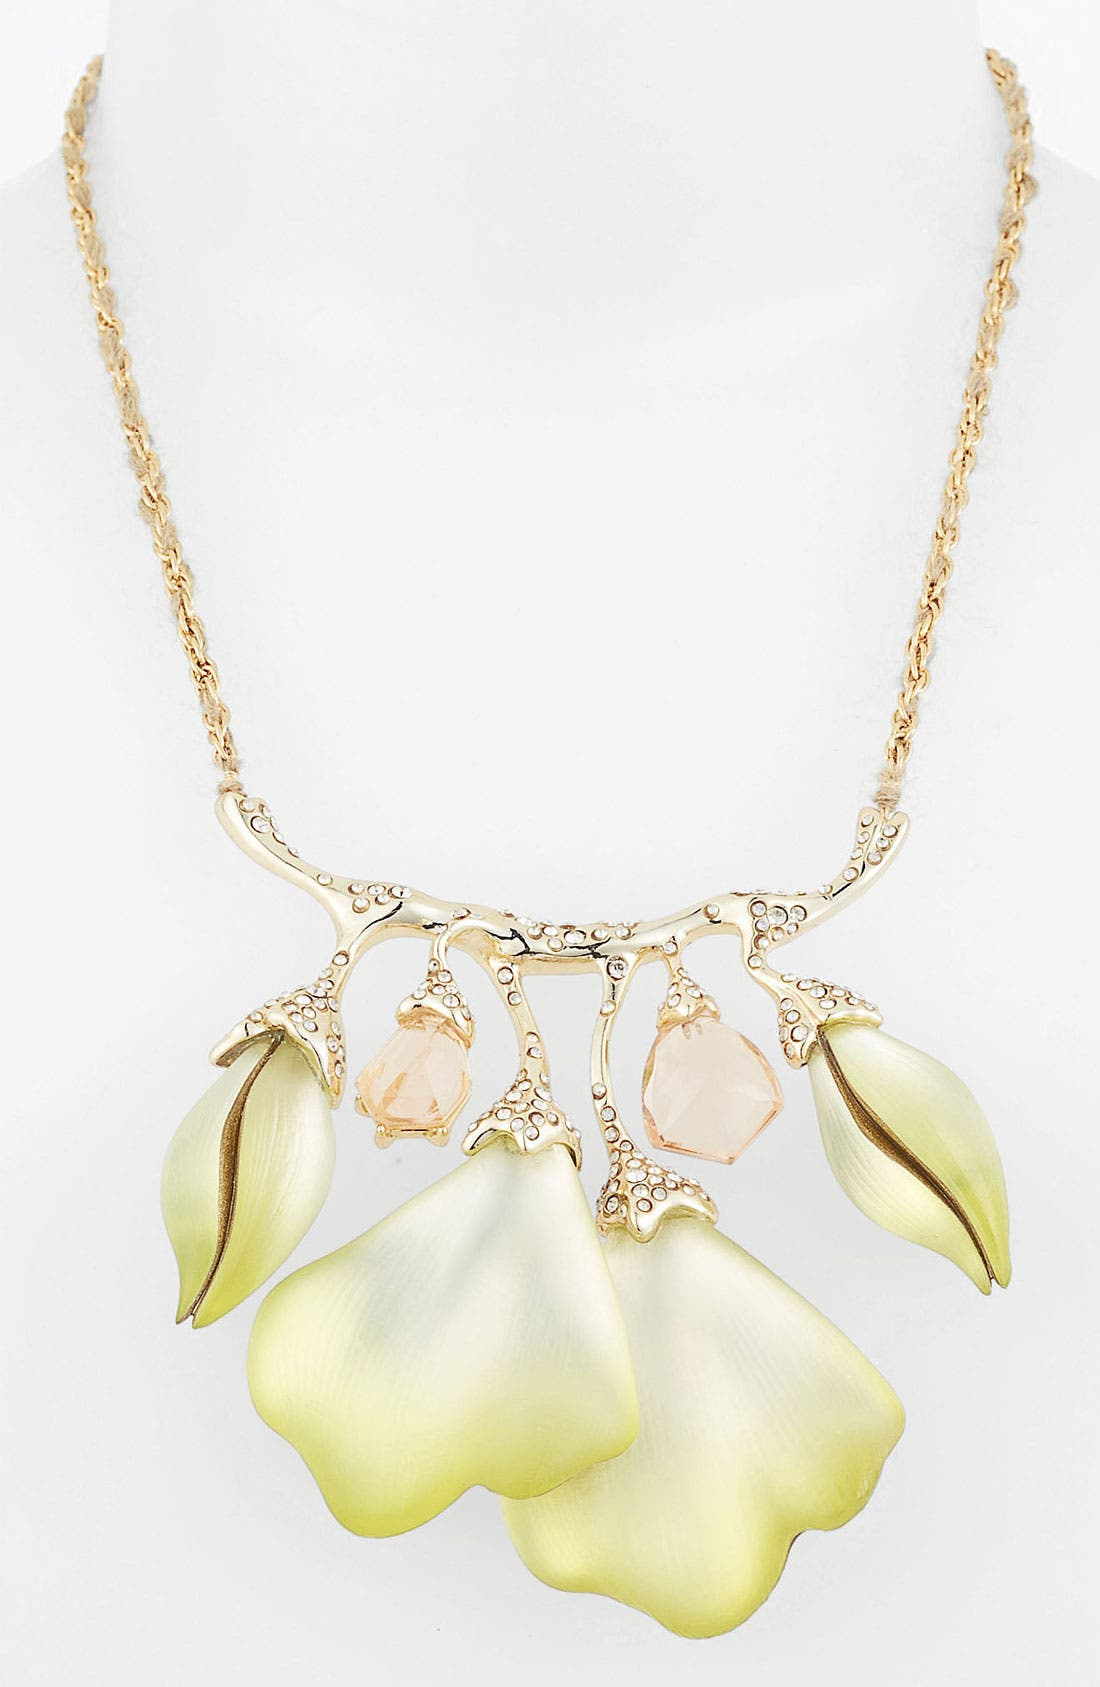 Alternate Image 1 Selected - Alexis Bittar 'Ophelia' Bib Necklace